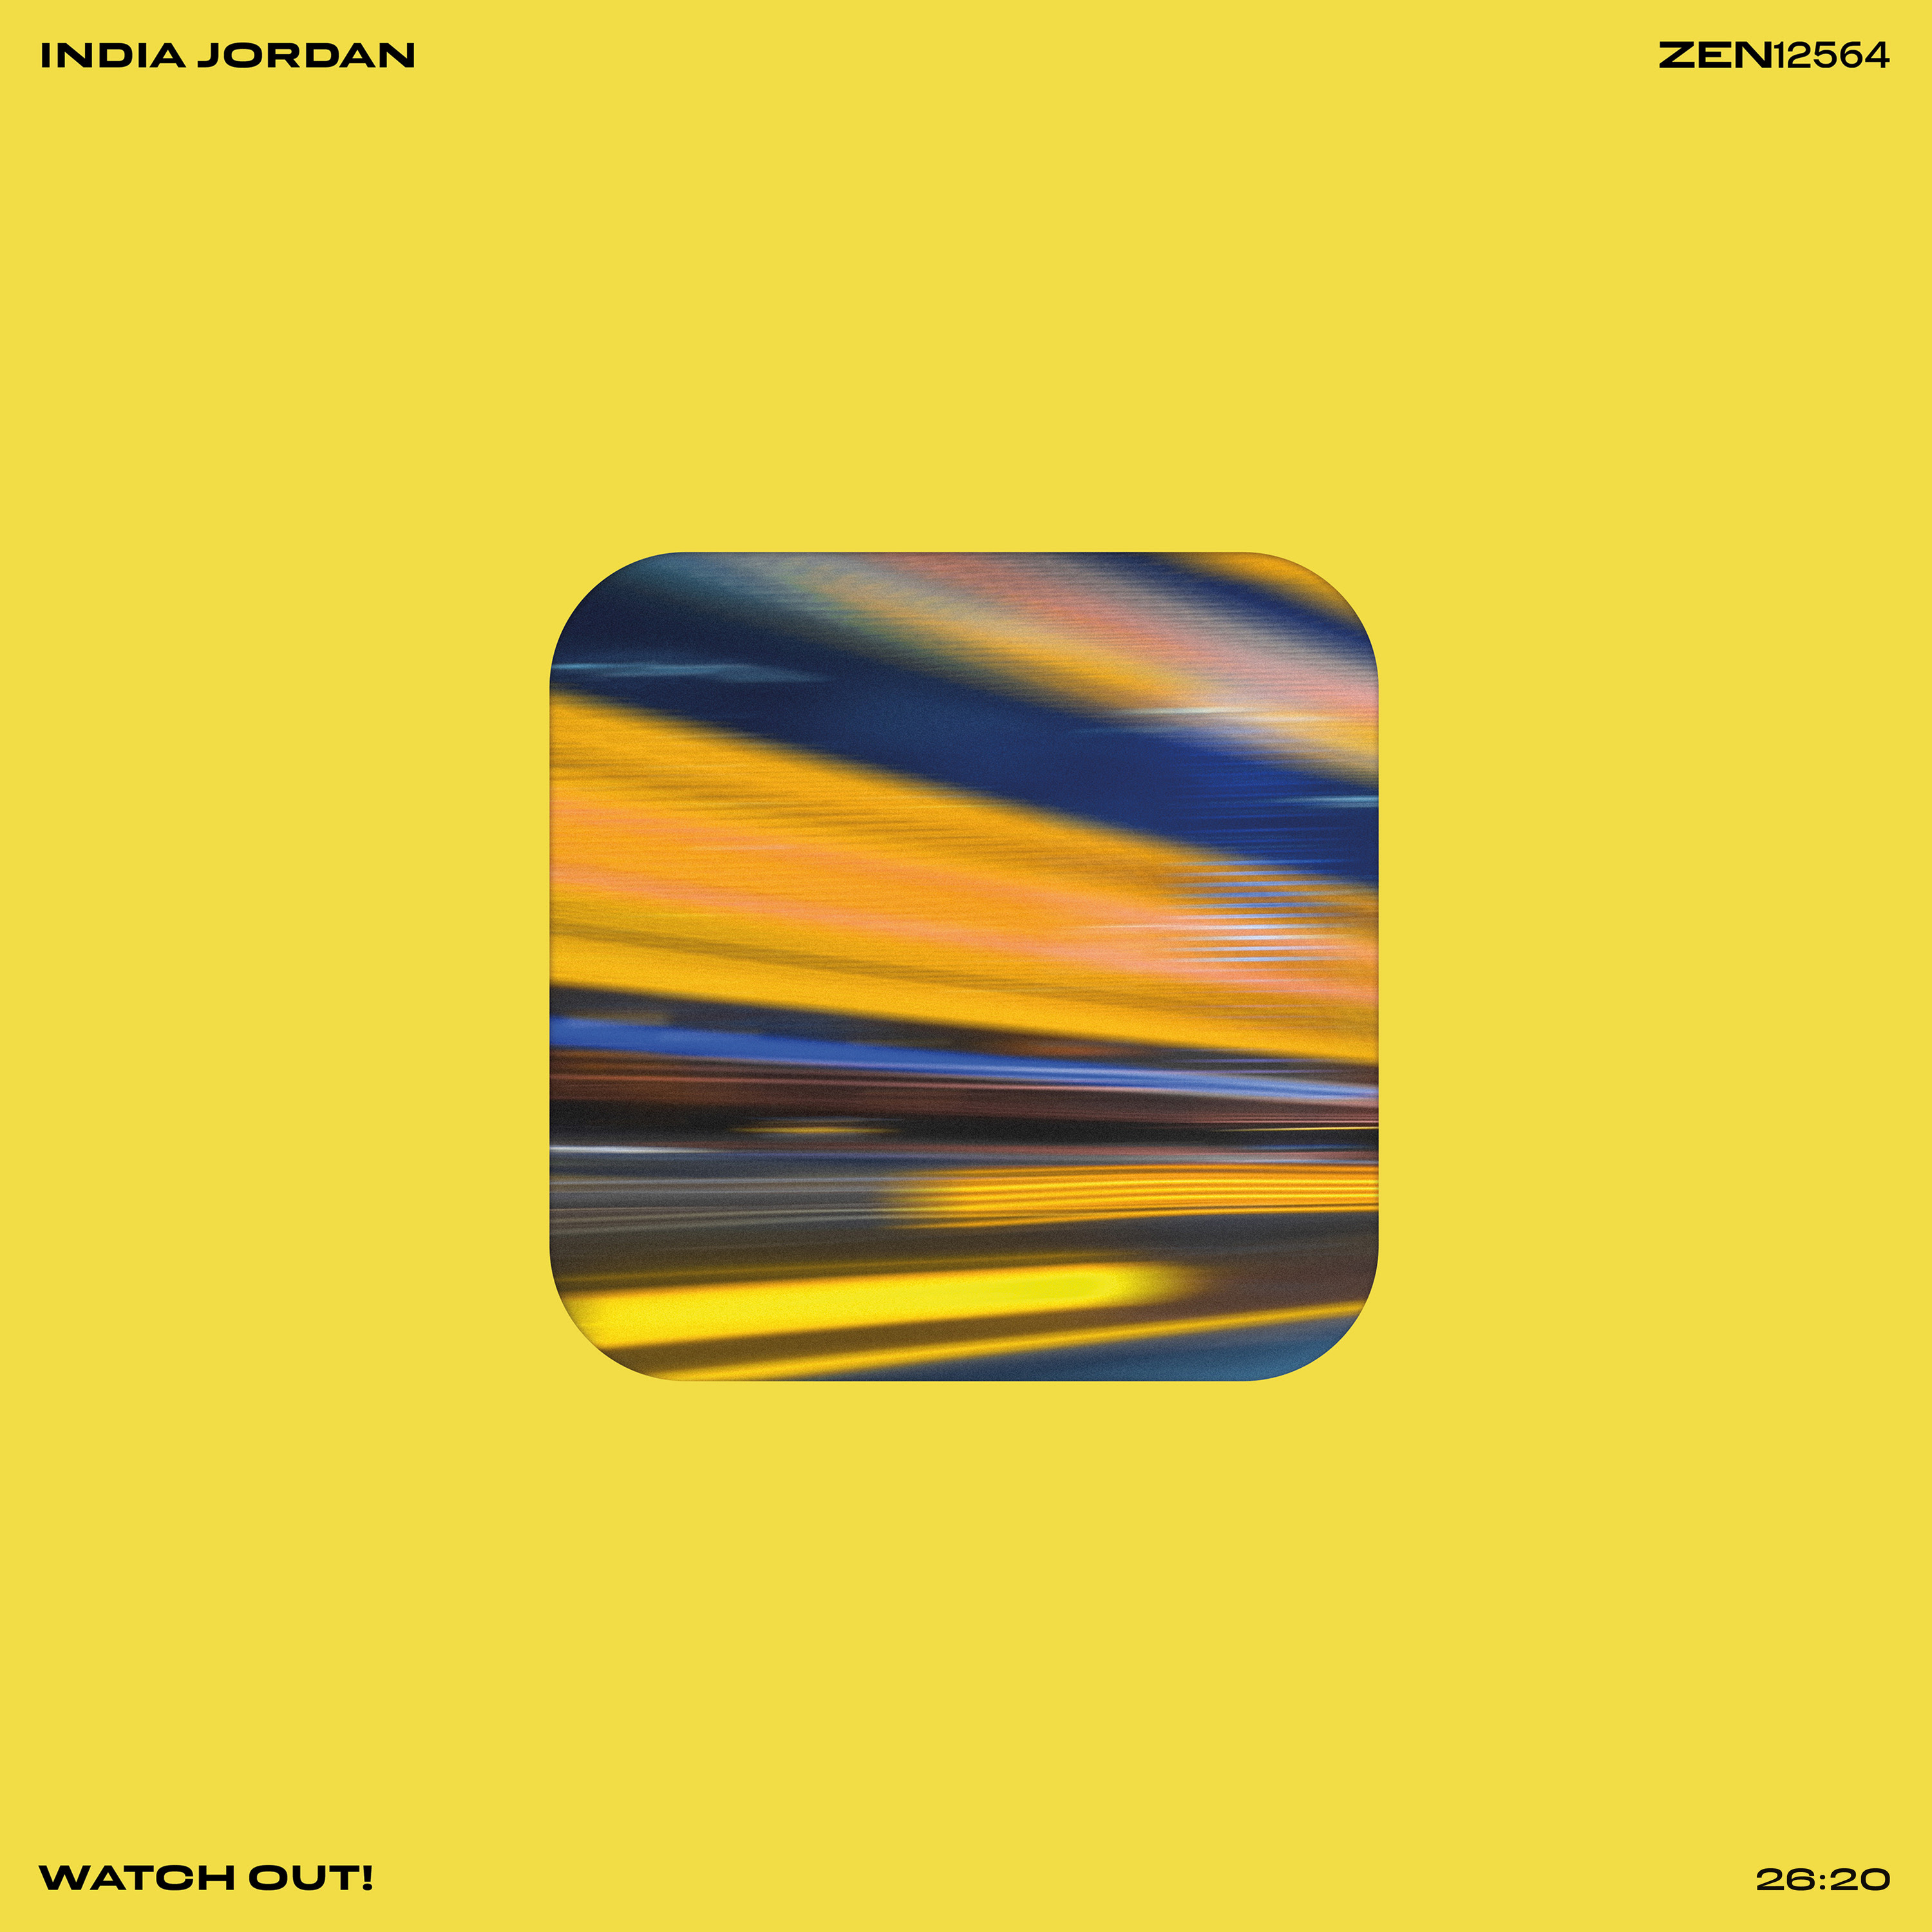 India Jordan Announces New EP 'Watch Out!'